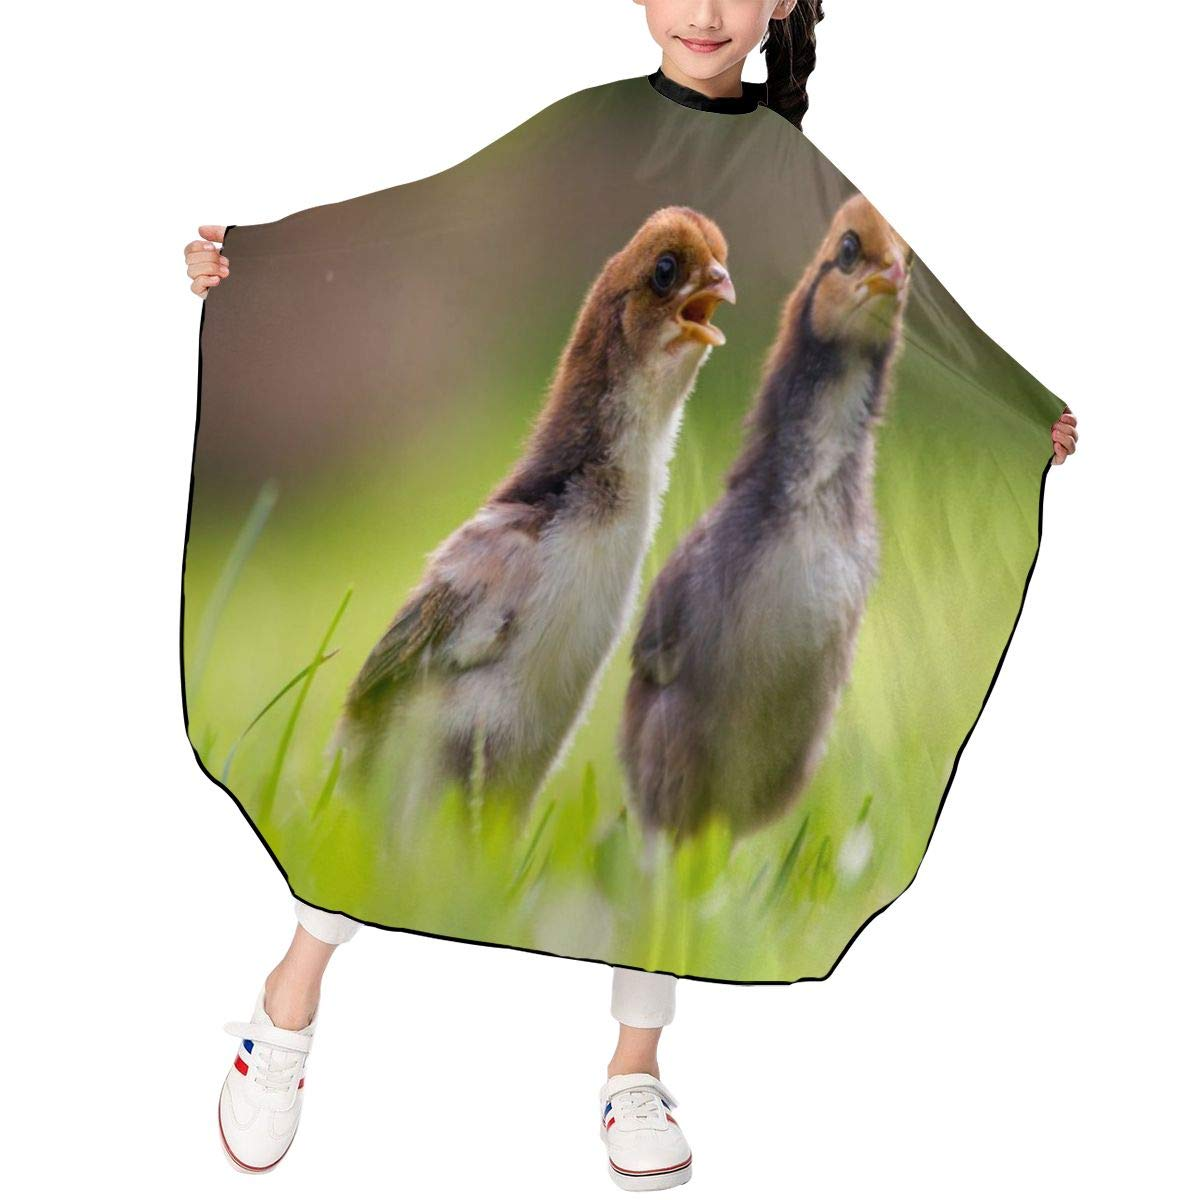 Kids Haircut Apron, Professional Salon Polyester Cape, Beautiful Brown Chicks Barber Hairdressing Cape, Waterproof Adjustable Snap for Hair Cutting Hairstylists for Boys Girls